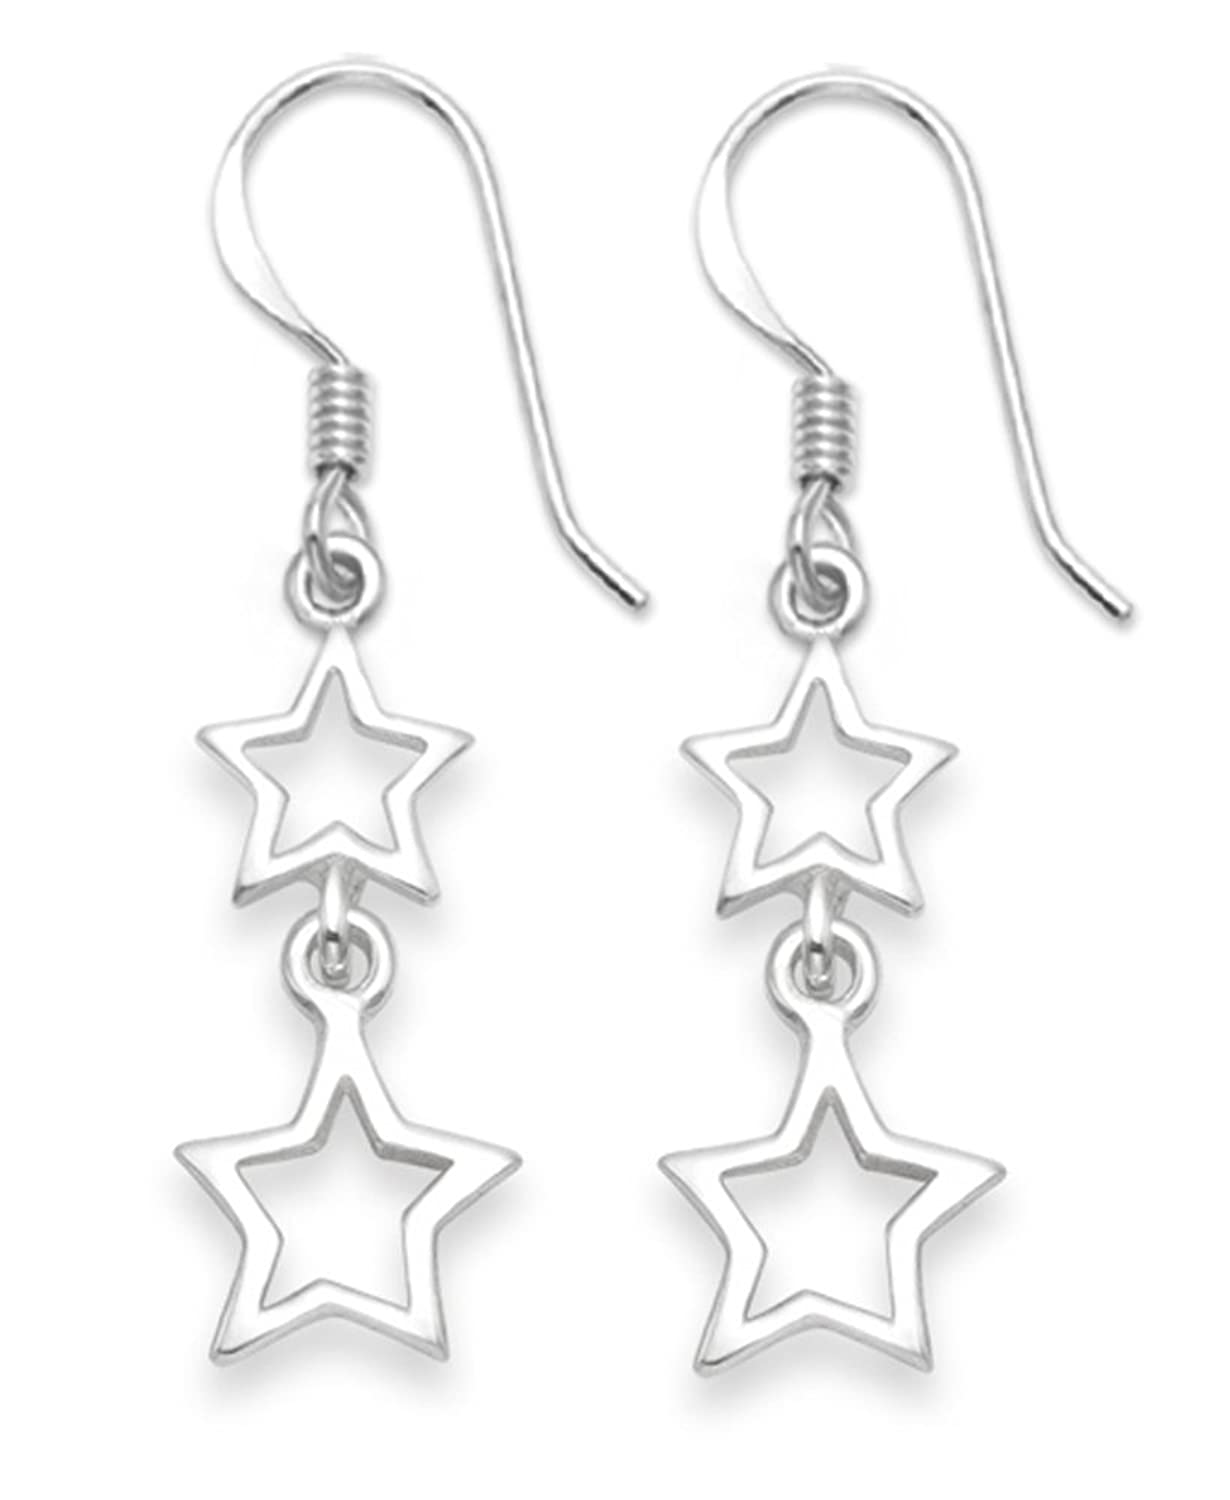 Sterling Silver Star earrings - Three star earrings on star stud - SIZE: 43mm x 9.5mm. 6171/HNbox 2x9ph648